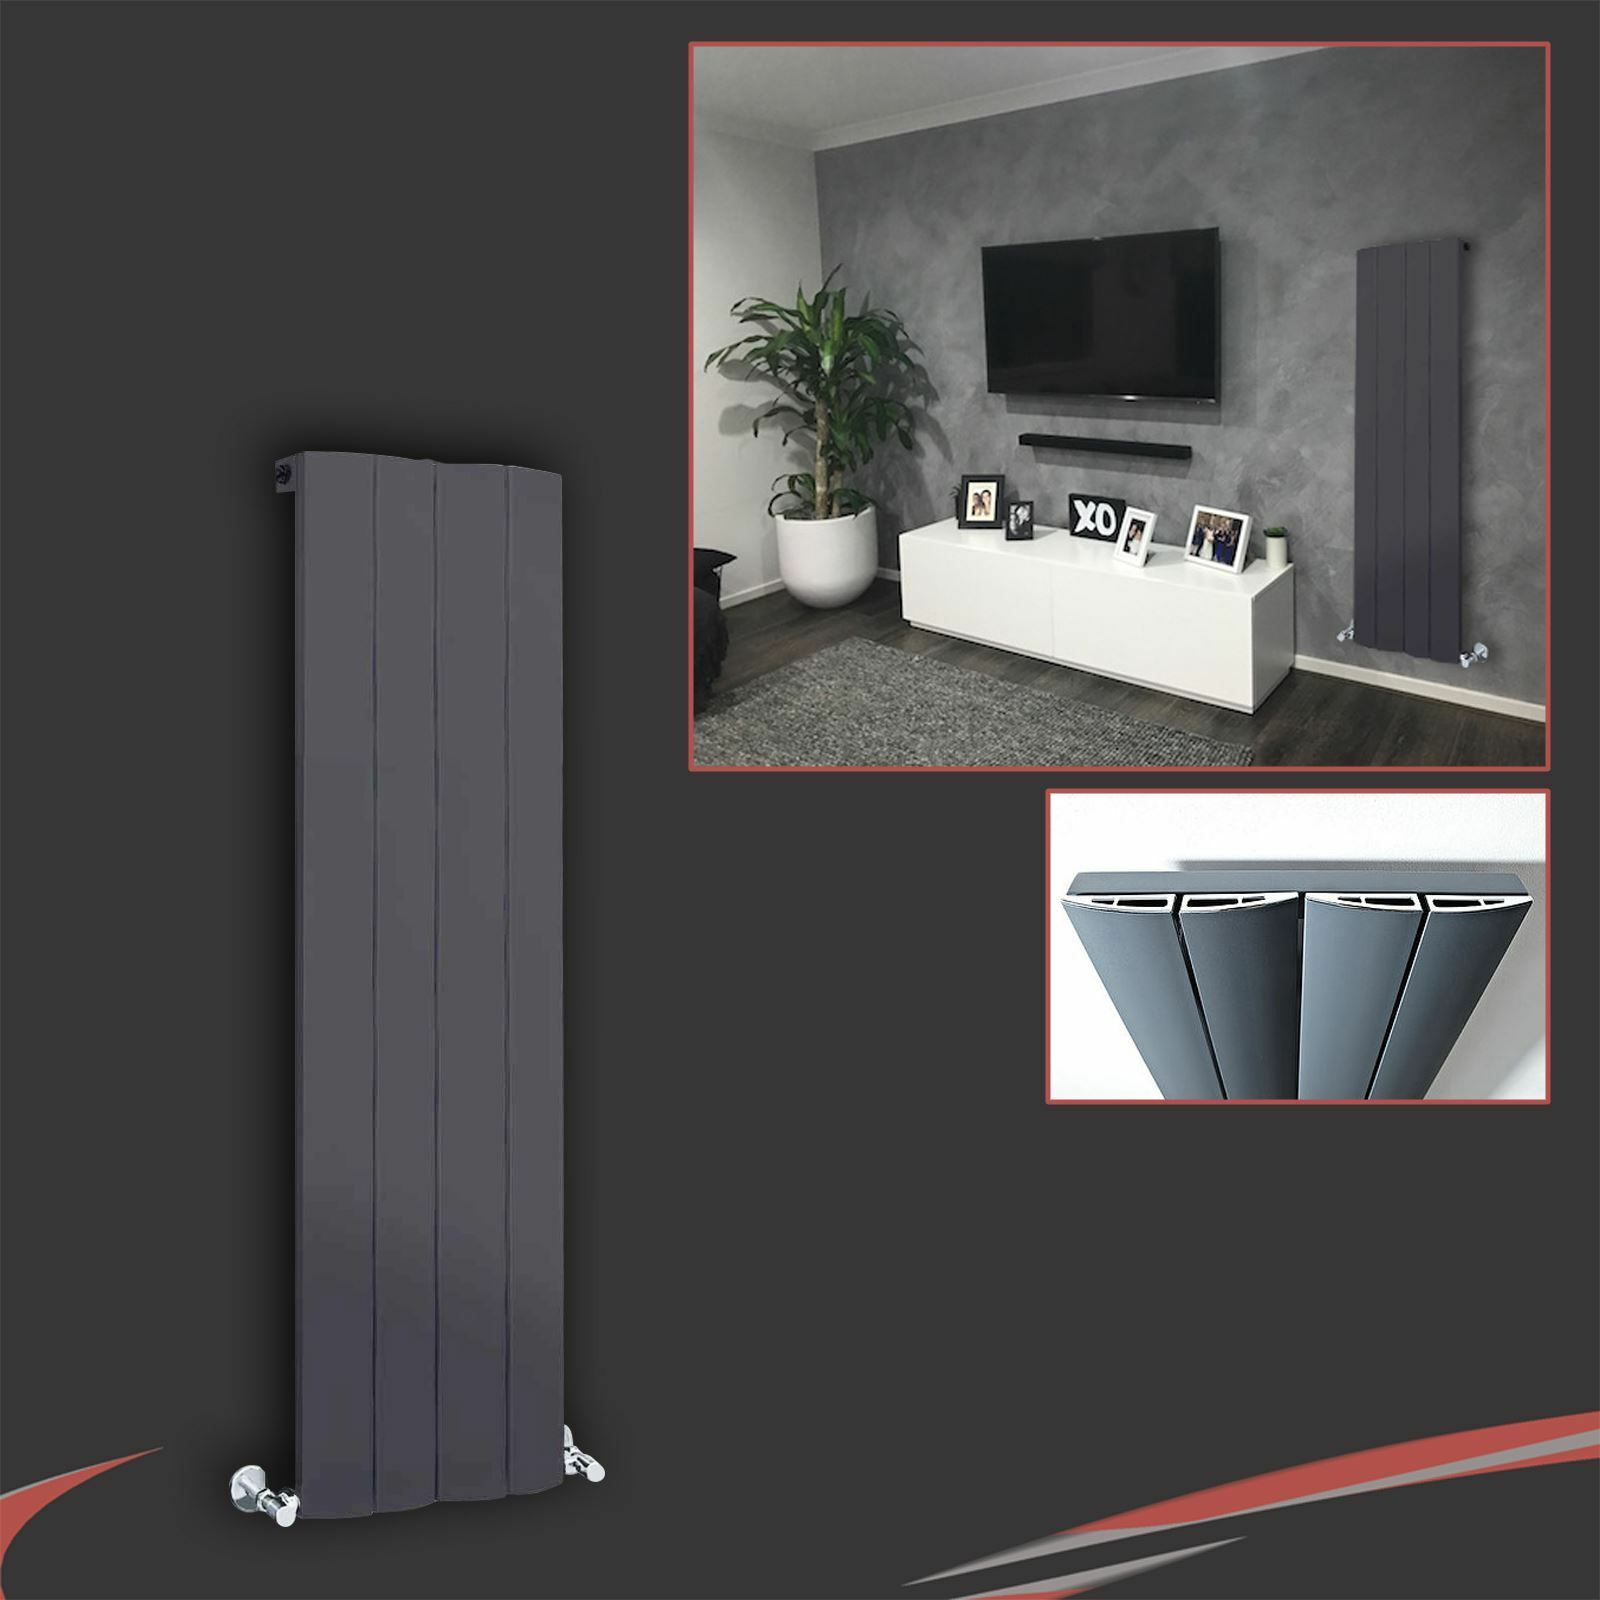 375 mm (W) x 1200 mm (H)  WAVE  anthracite vertical Aluminium Radiateur - 2521 BTU